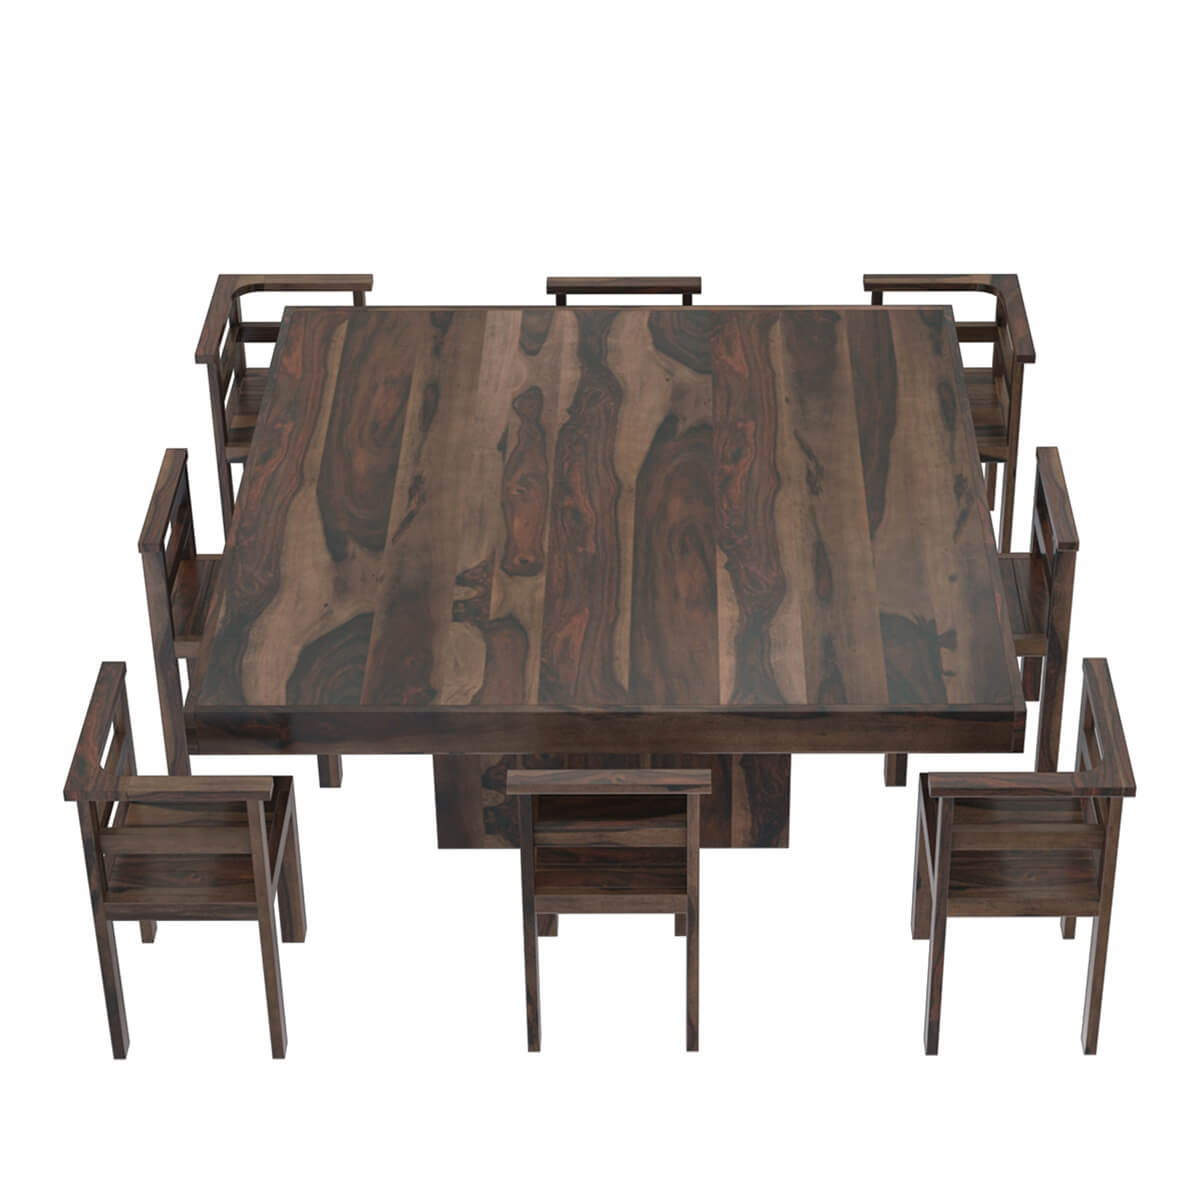 Square Oak Dining Table For 8 Minsk Large Square Oak  : 69064 from amlibgroup.com size 1200 x 1200 jpeg 196kB